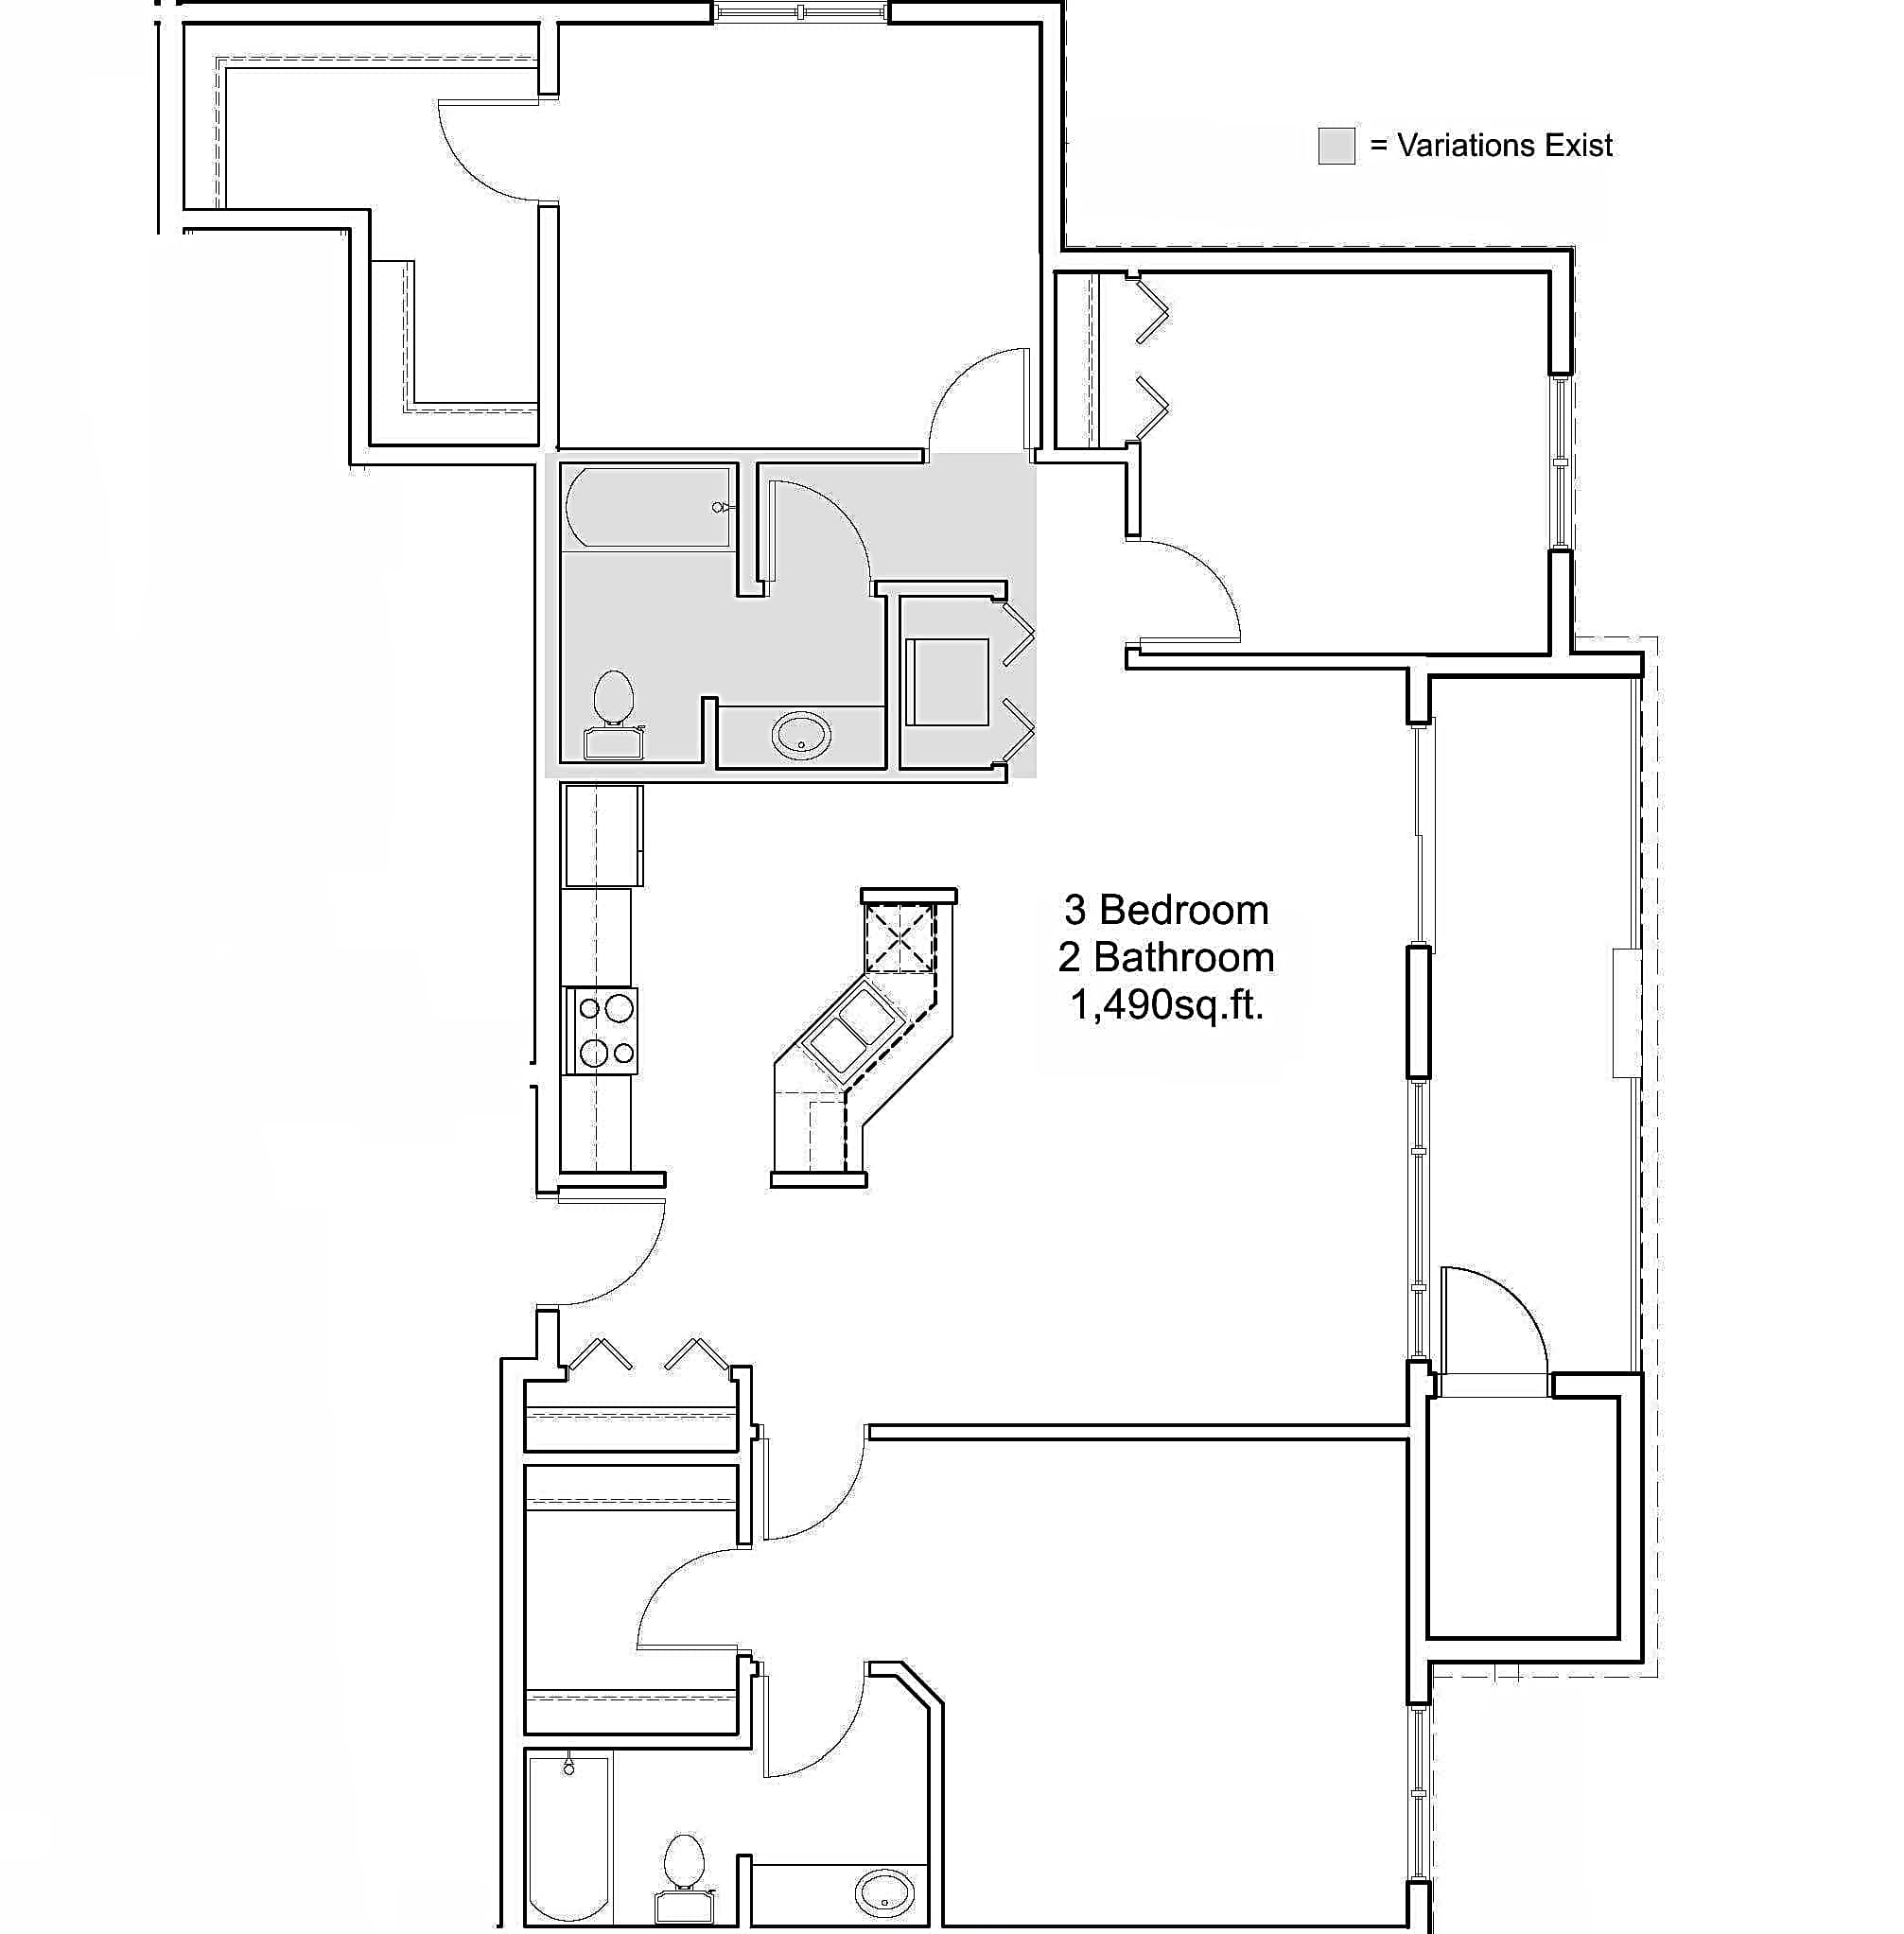 3 Bedroom 2 Bathroom Floor Plan